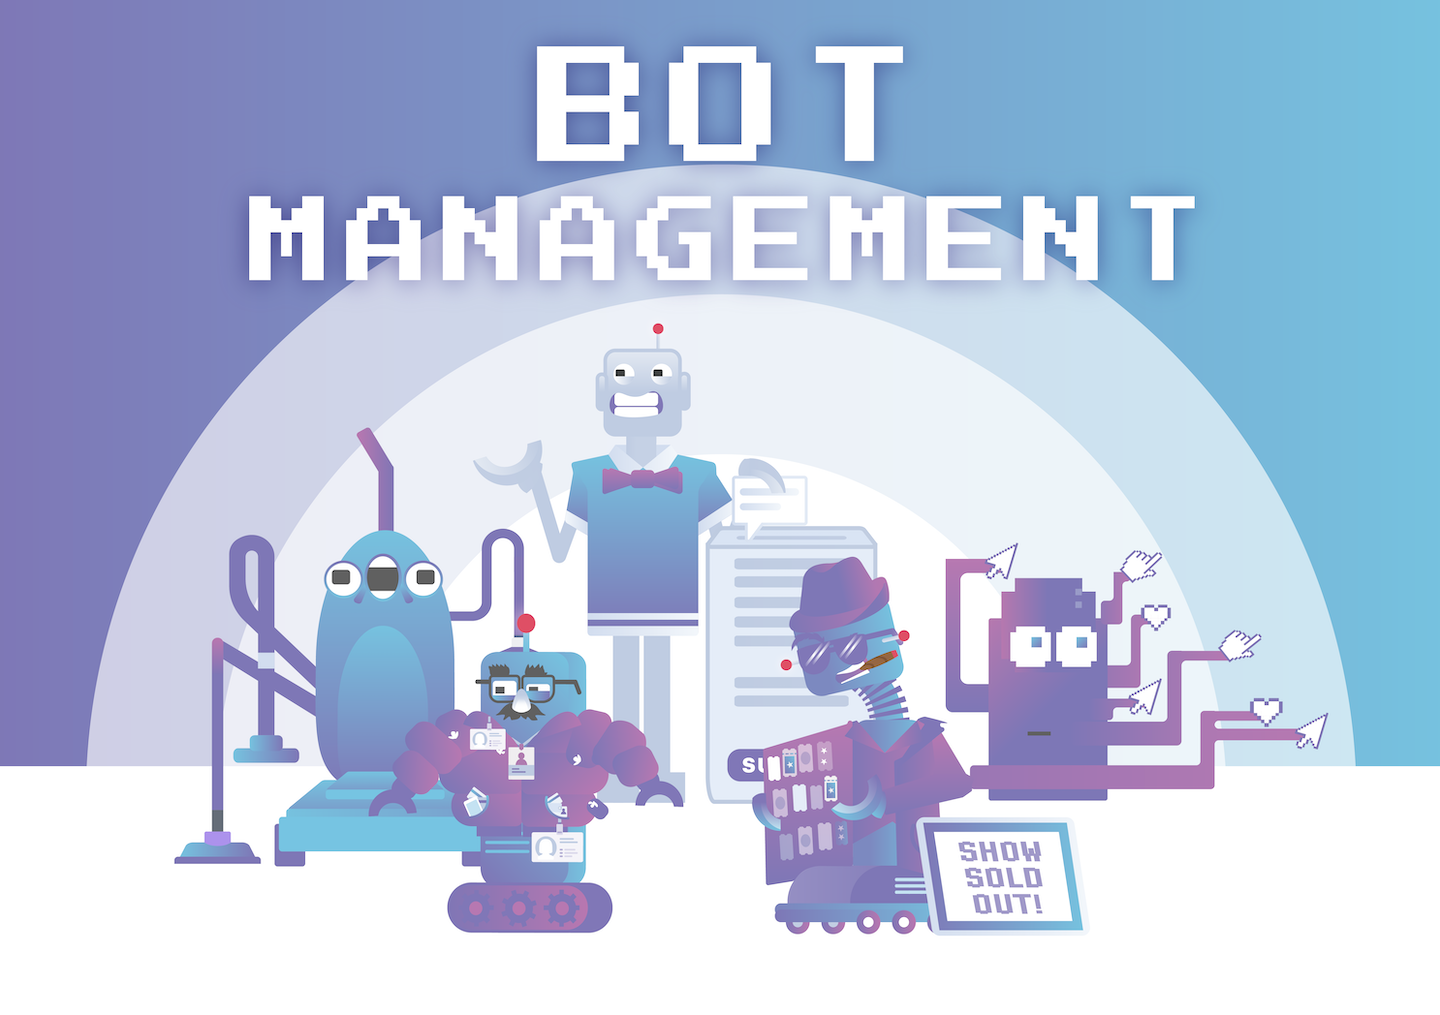 Bot management - group of bots